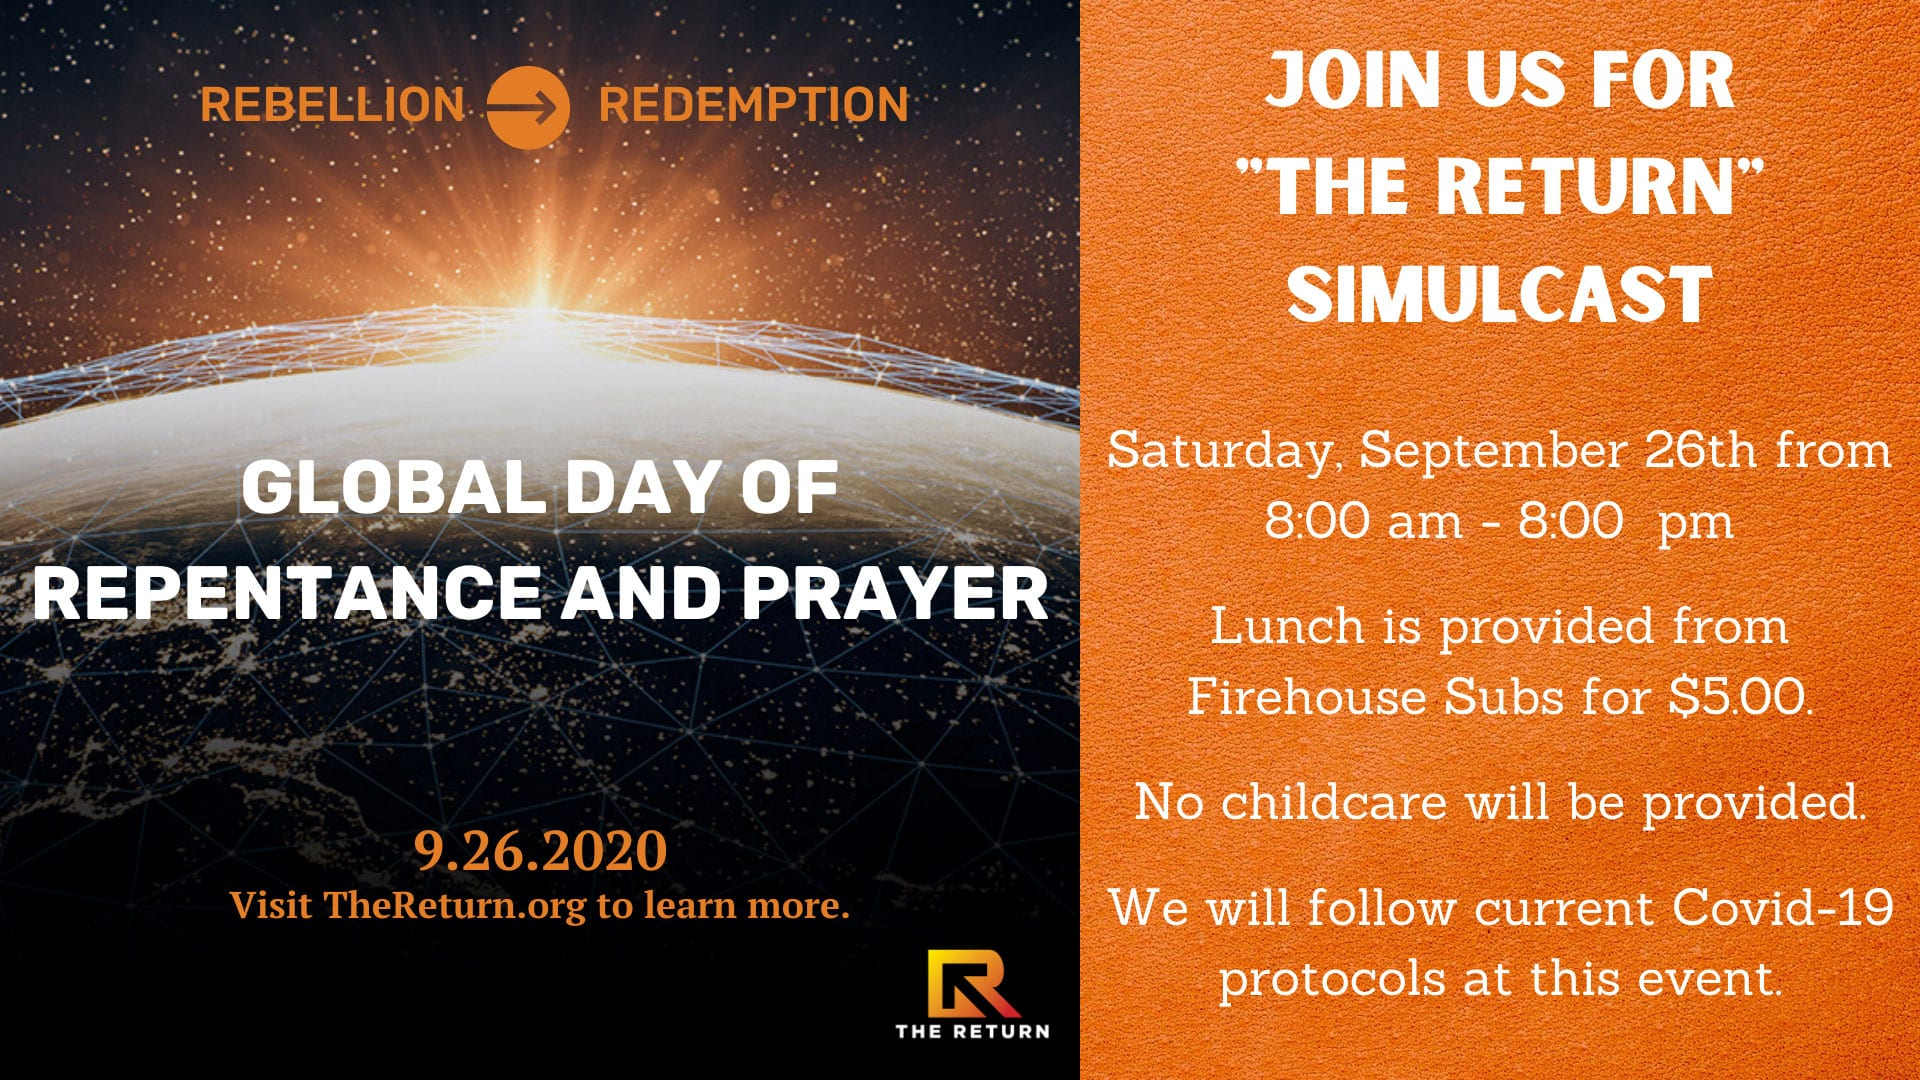 Copy-of-Join-us-on-Saturday,-September-26th-for-_The-Return_-Simulcast!-(2)